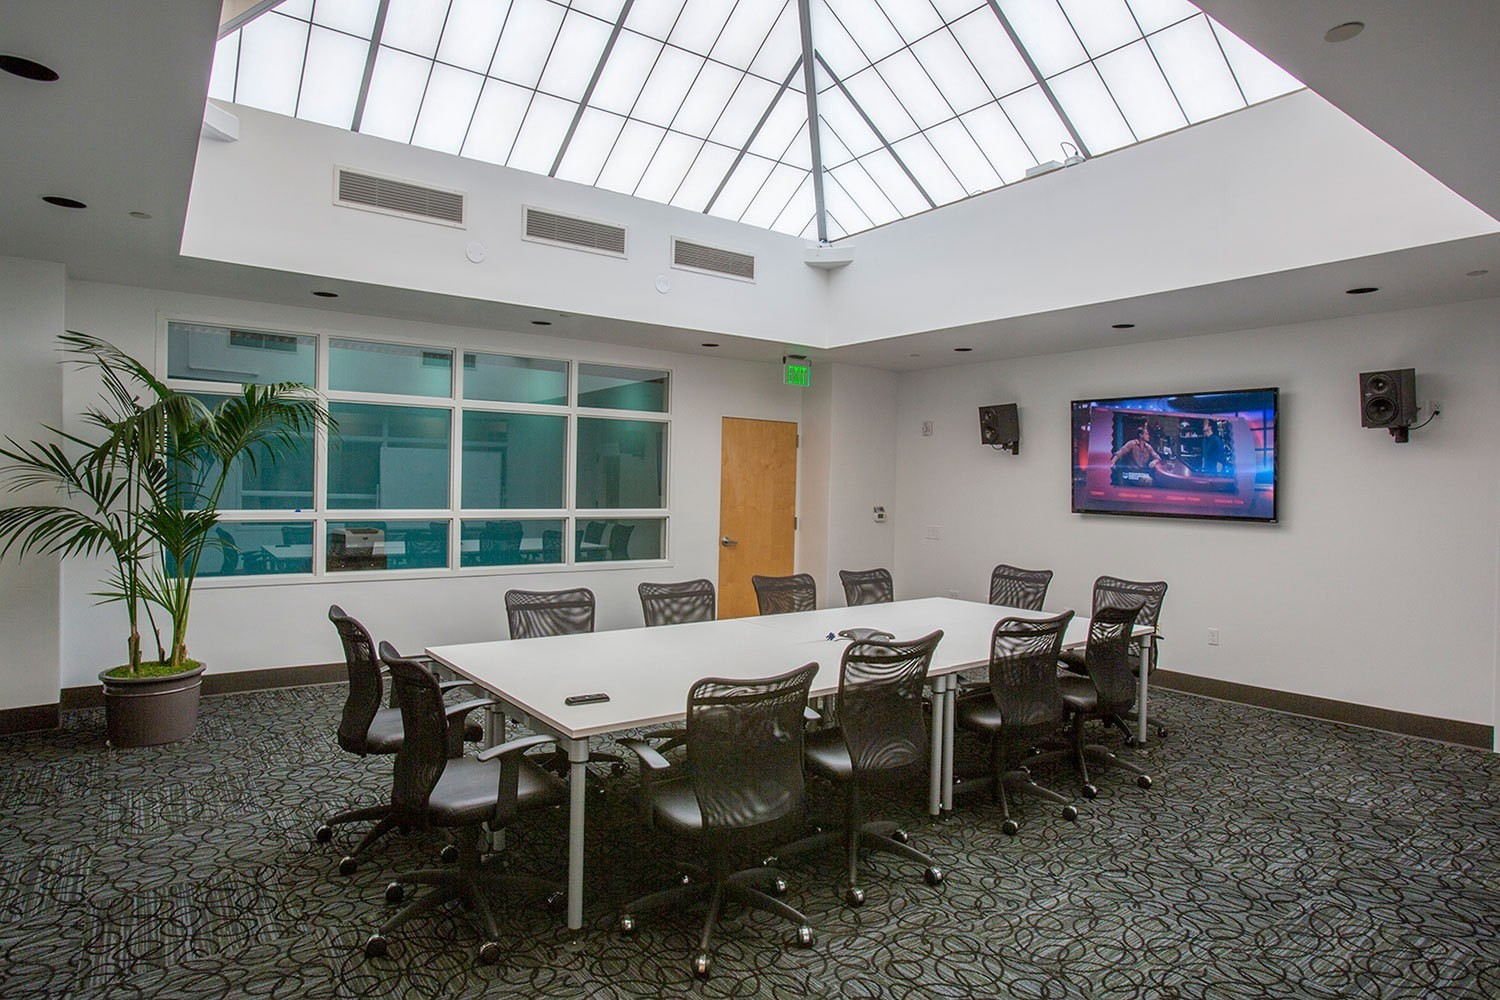 iheart-media-office-studio-renovation-sanfrancisco-conference-room